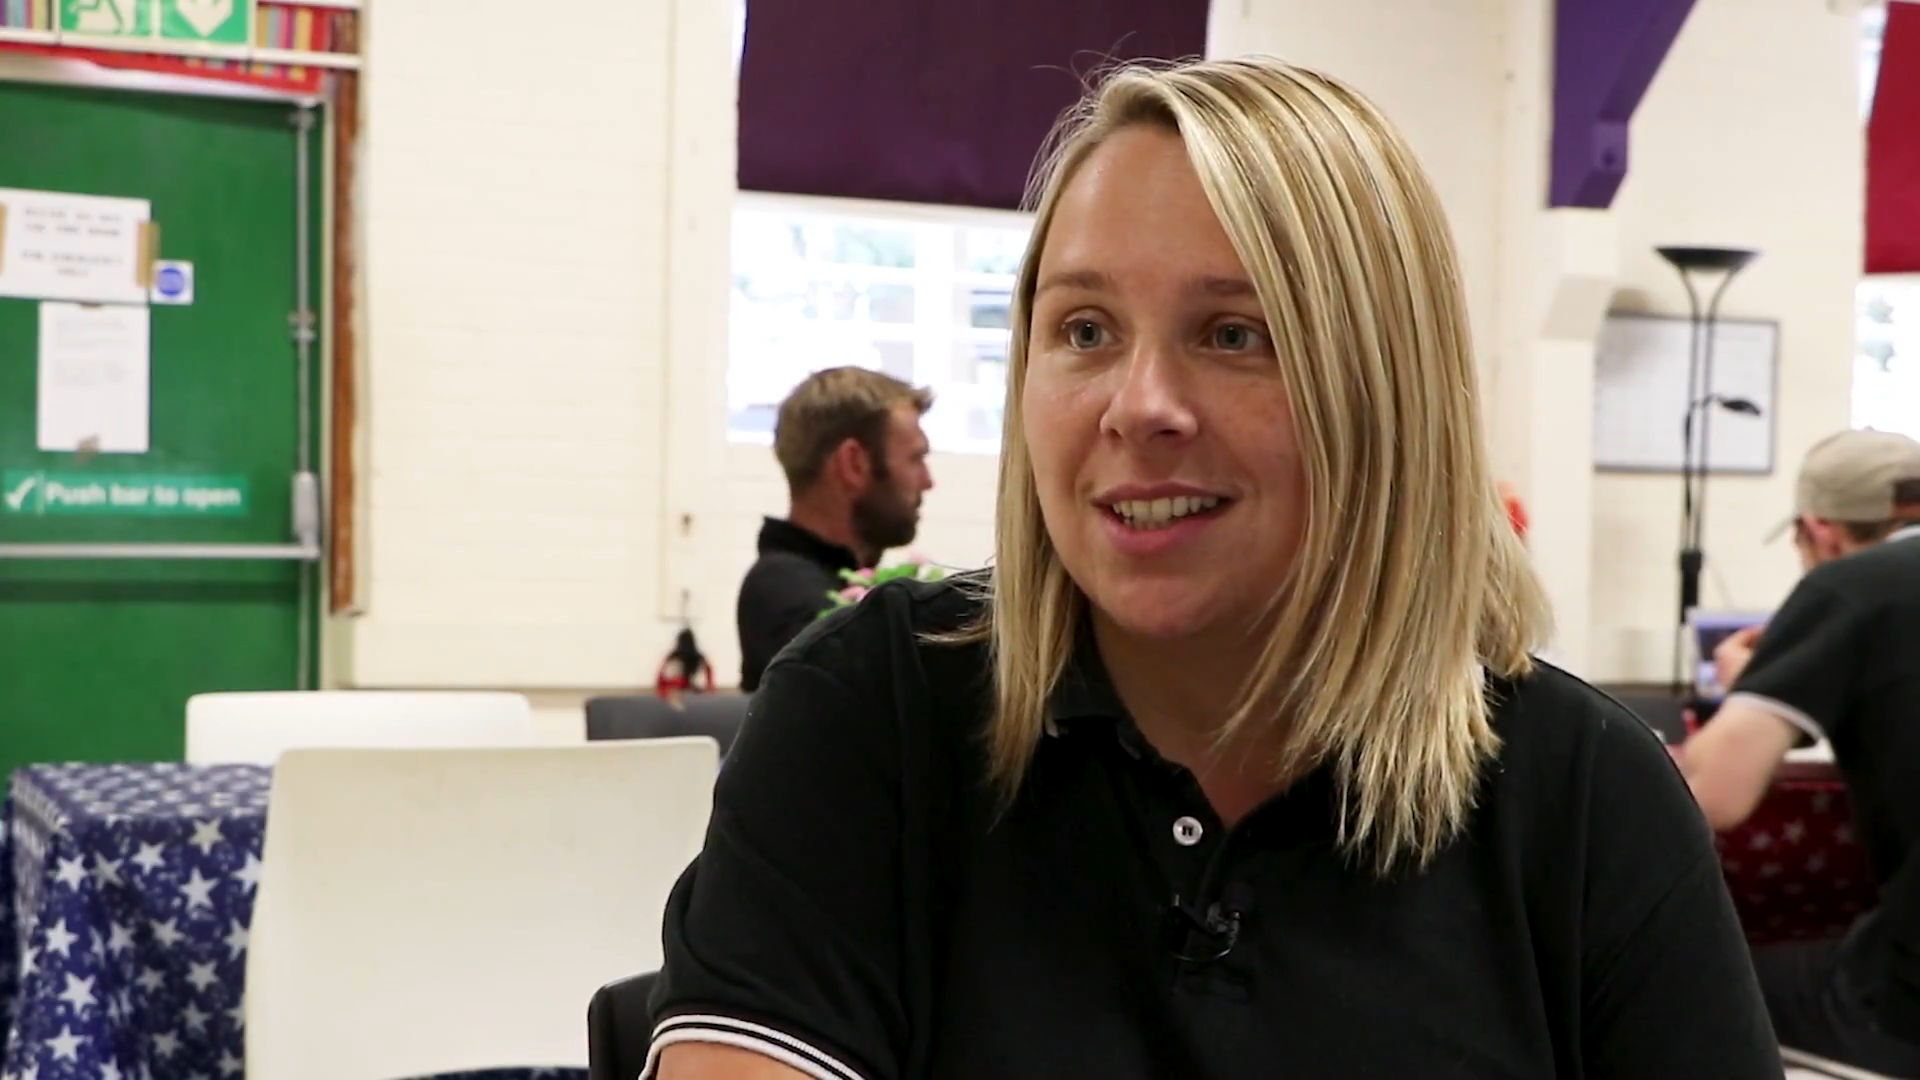 Volunteer From The Camberley All Night Cafe discusses what the facility can provide for the homeless in Surrey Heath.